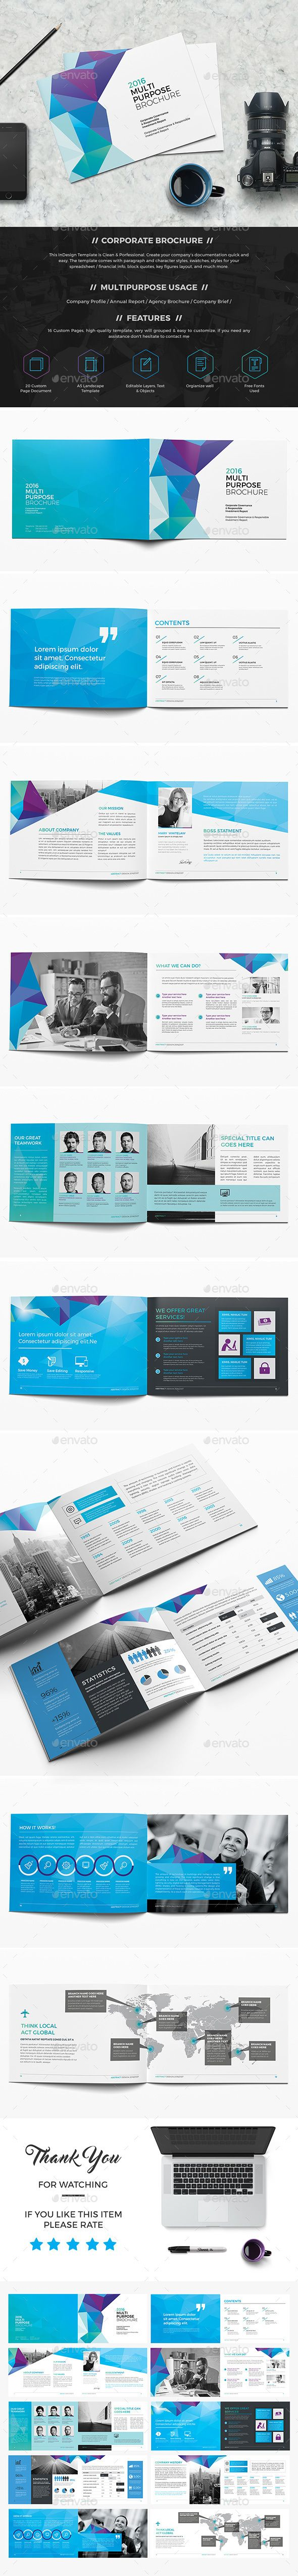 Abstract Landscape Brochure 20 Page Template InDesign INDD. Download here: http://graphicriver.net/item/abstract-landscape-brochure-20-page/16503233?ref=ksioks